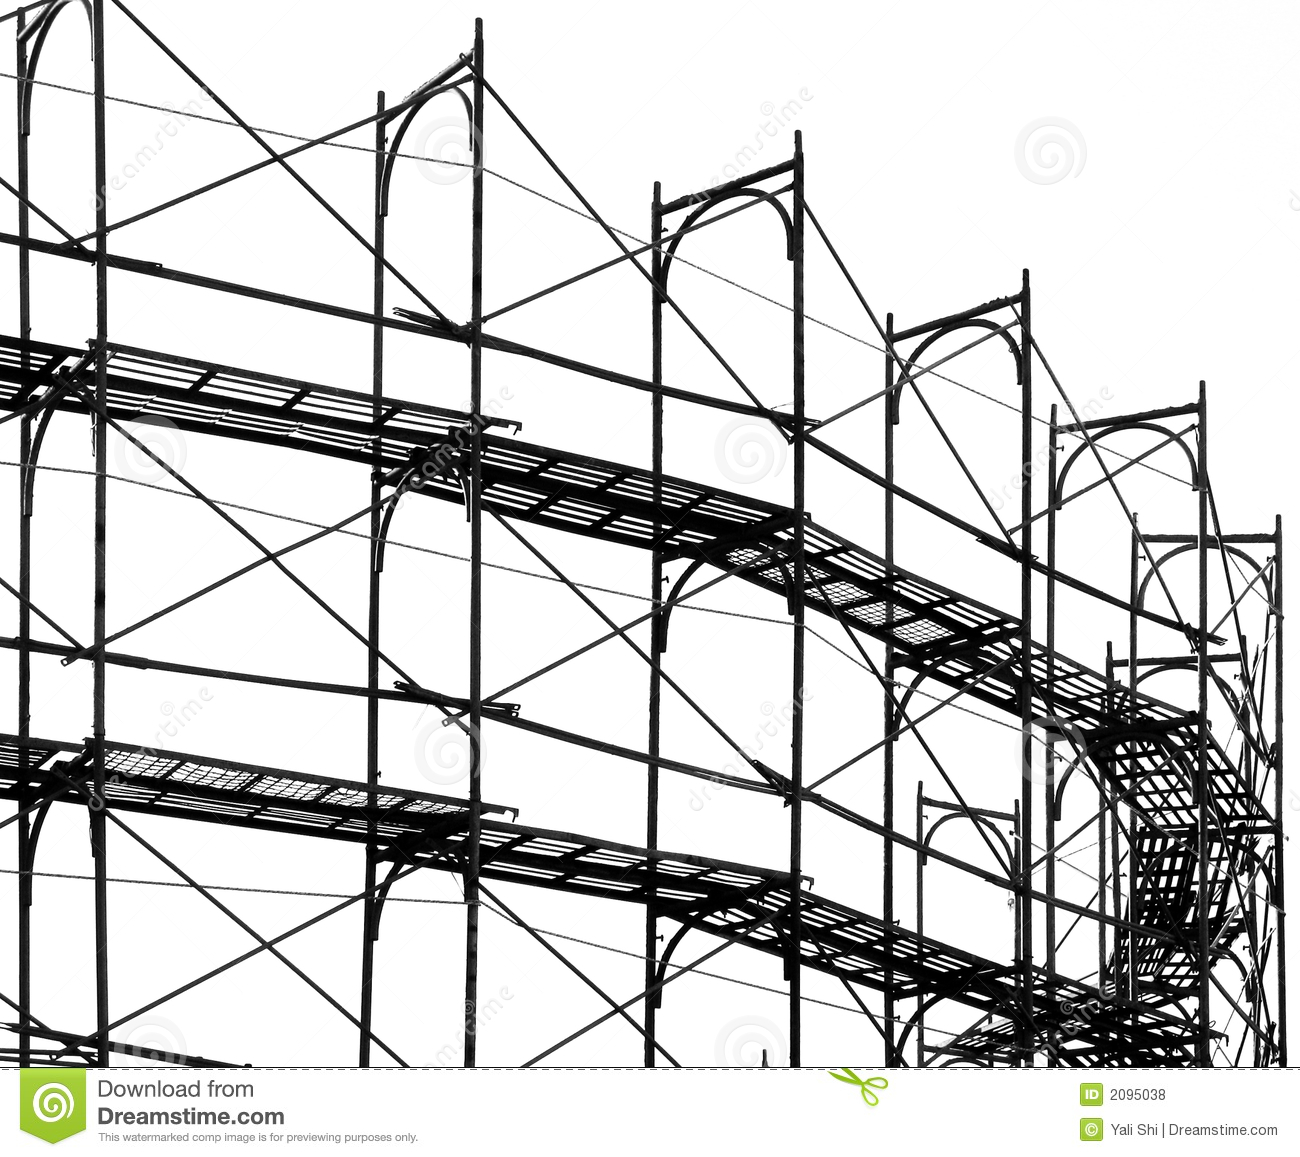 ... Site Scaffolding Royalty Free Stock Photos - Image: 2095038: dreamstime.com/royalty-free-stock-photos-construction-site...